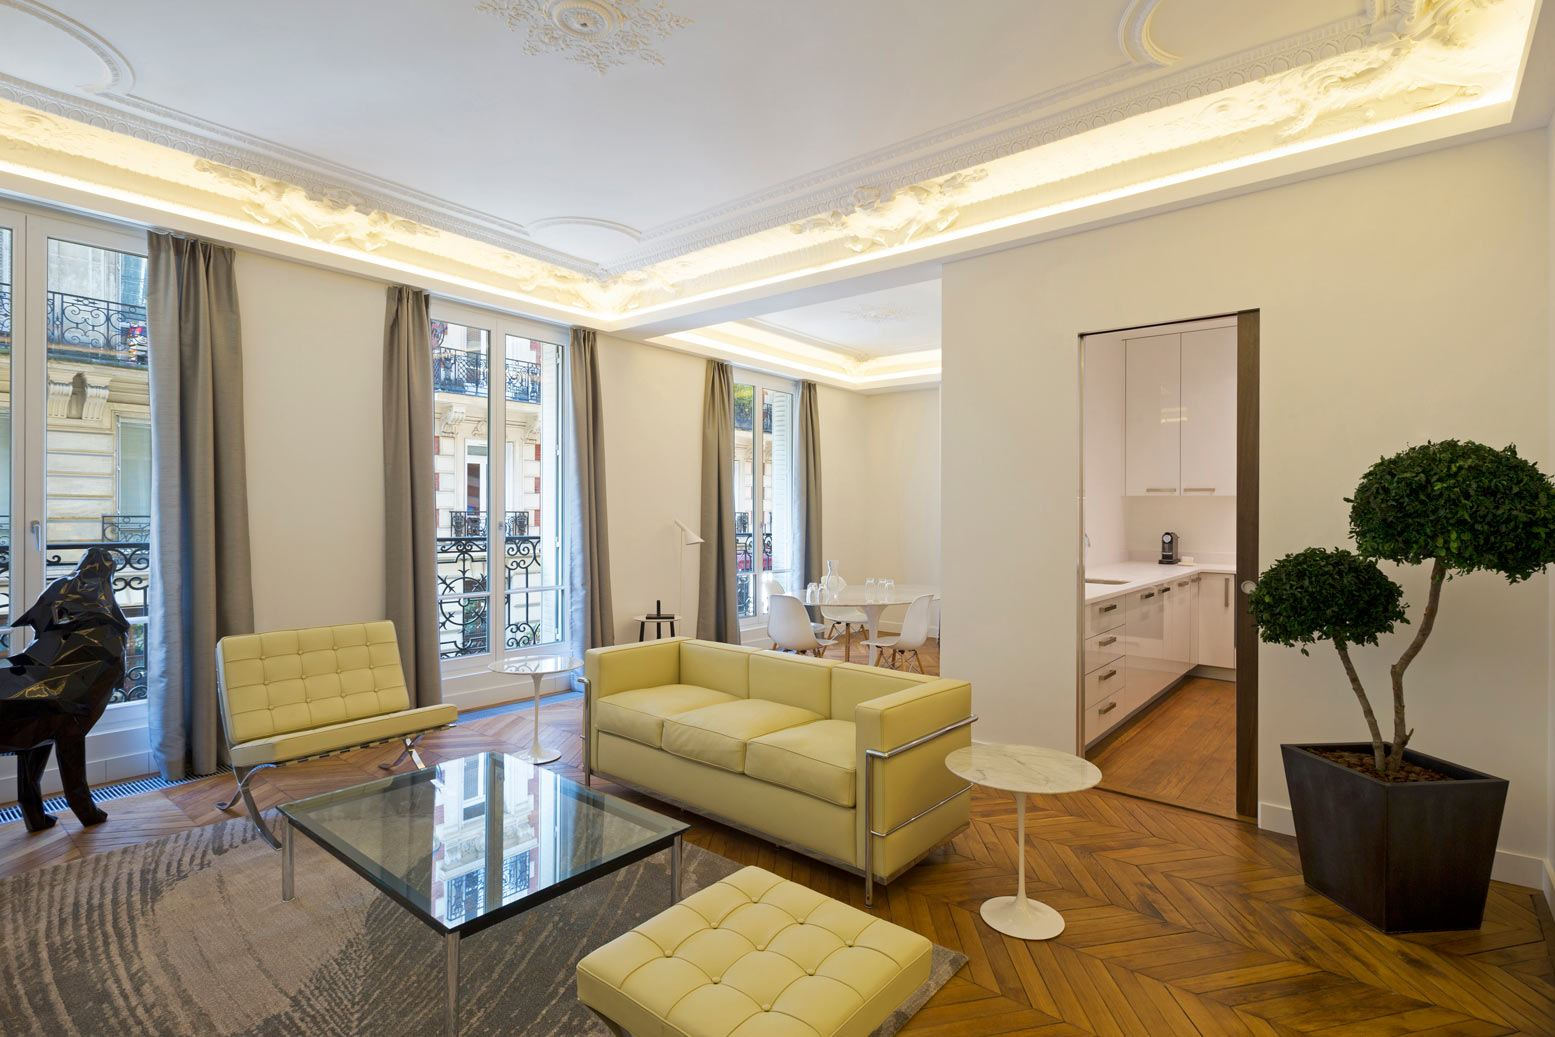 sales property at On sale 96 sq.m. pied-à-terre in Paris 8 - Triangle d'Or